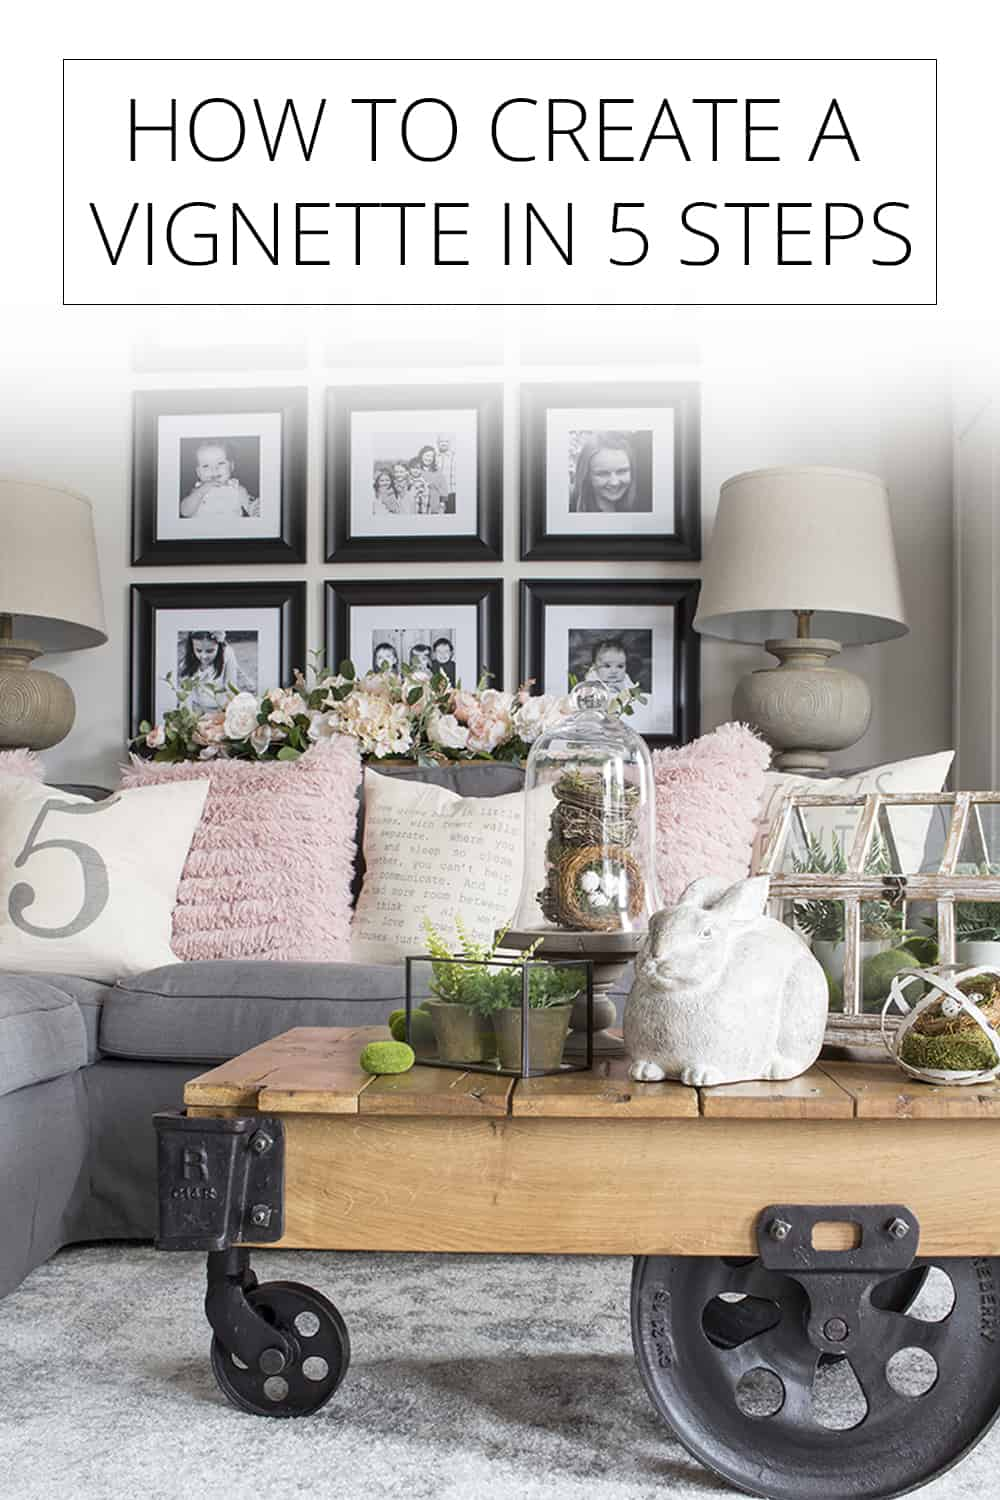 How to create a vignette love your home day 20 for Steps to start building a house